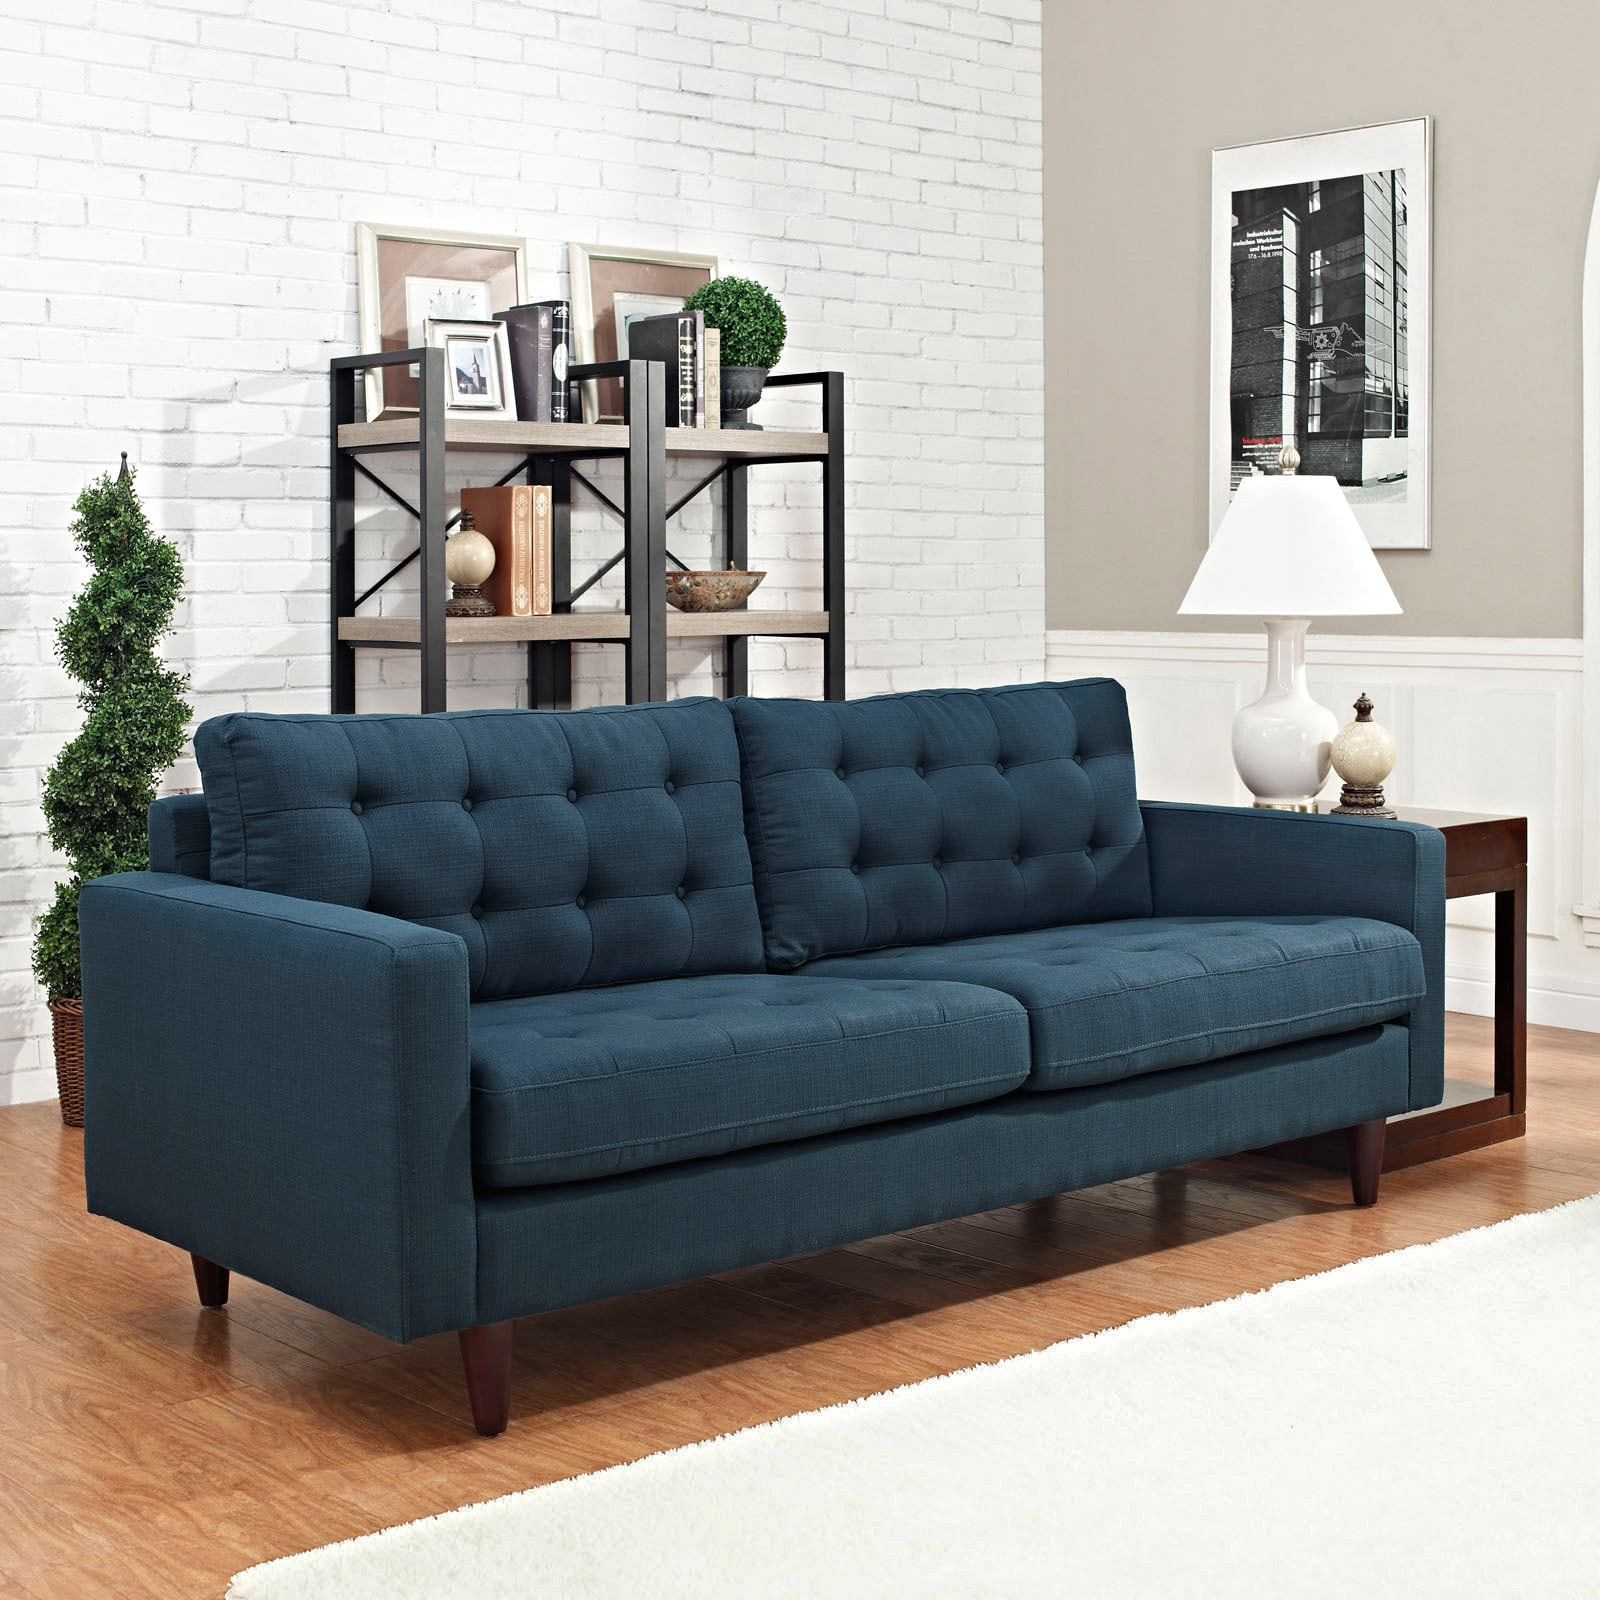 Gentil Shop Palm Canyon Eichler Tufted Upholstered Sofa   Free Shipping Today    Overstock.com   8704904